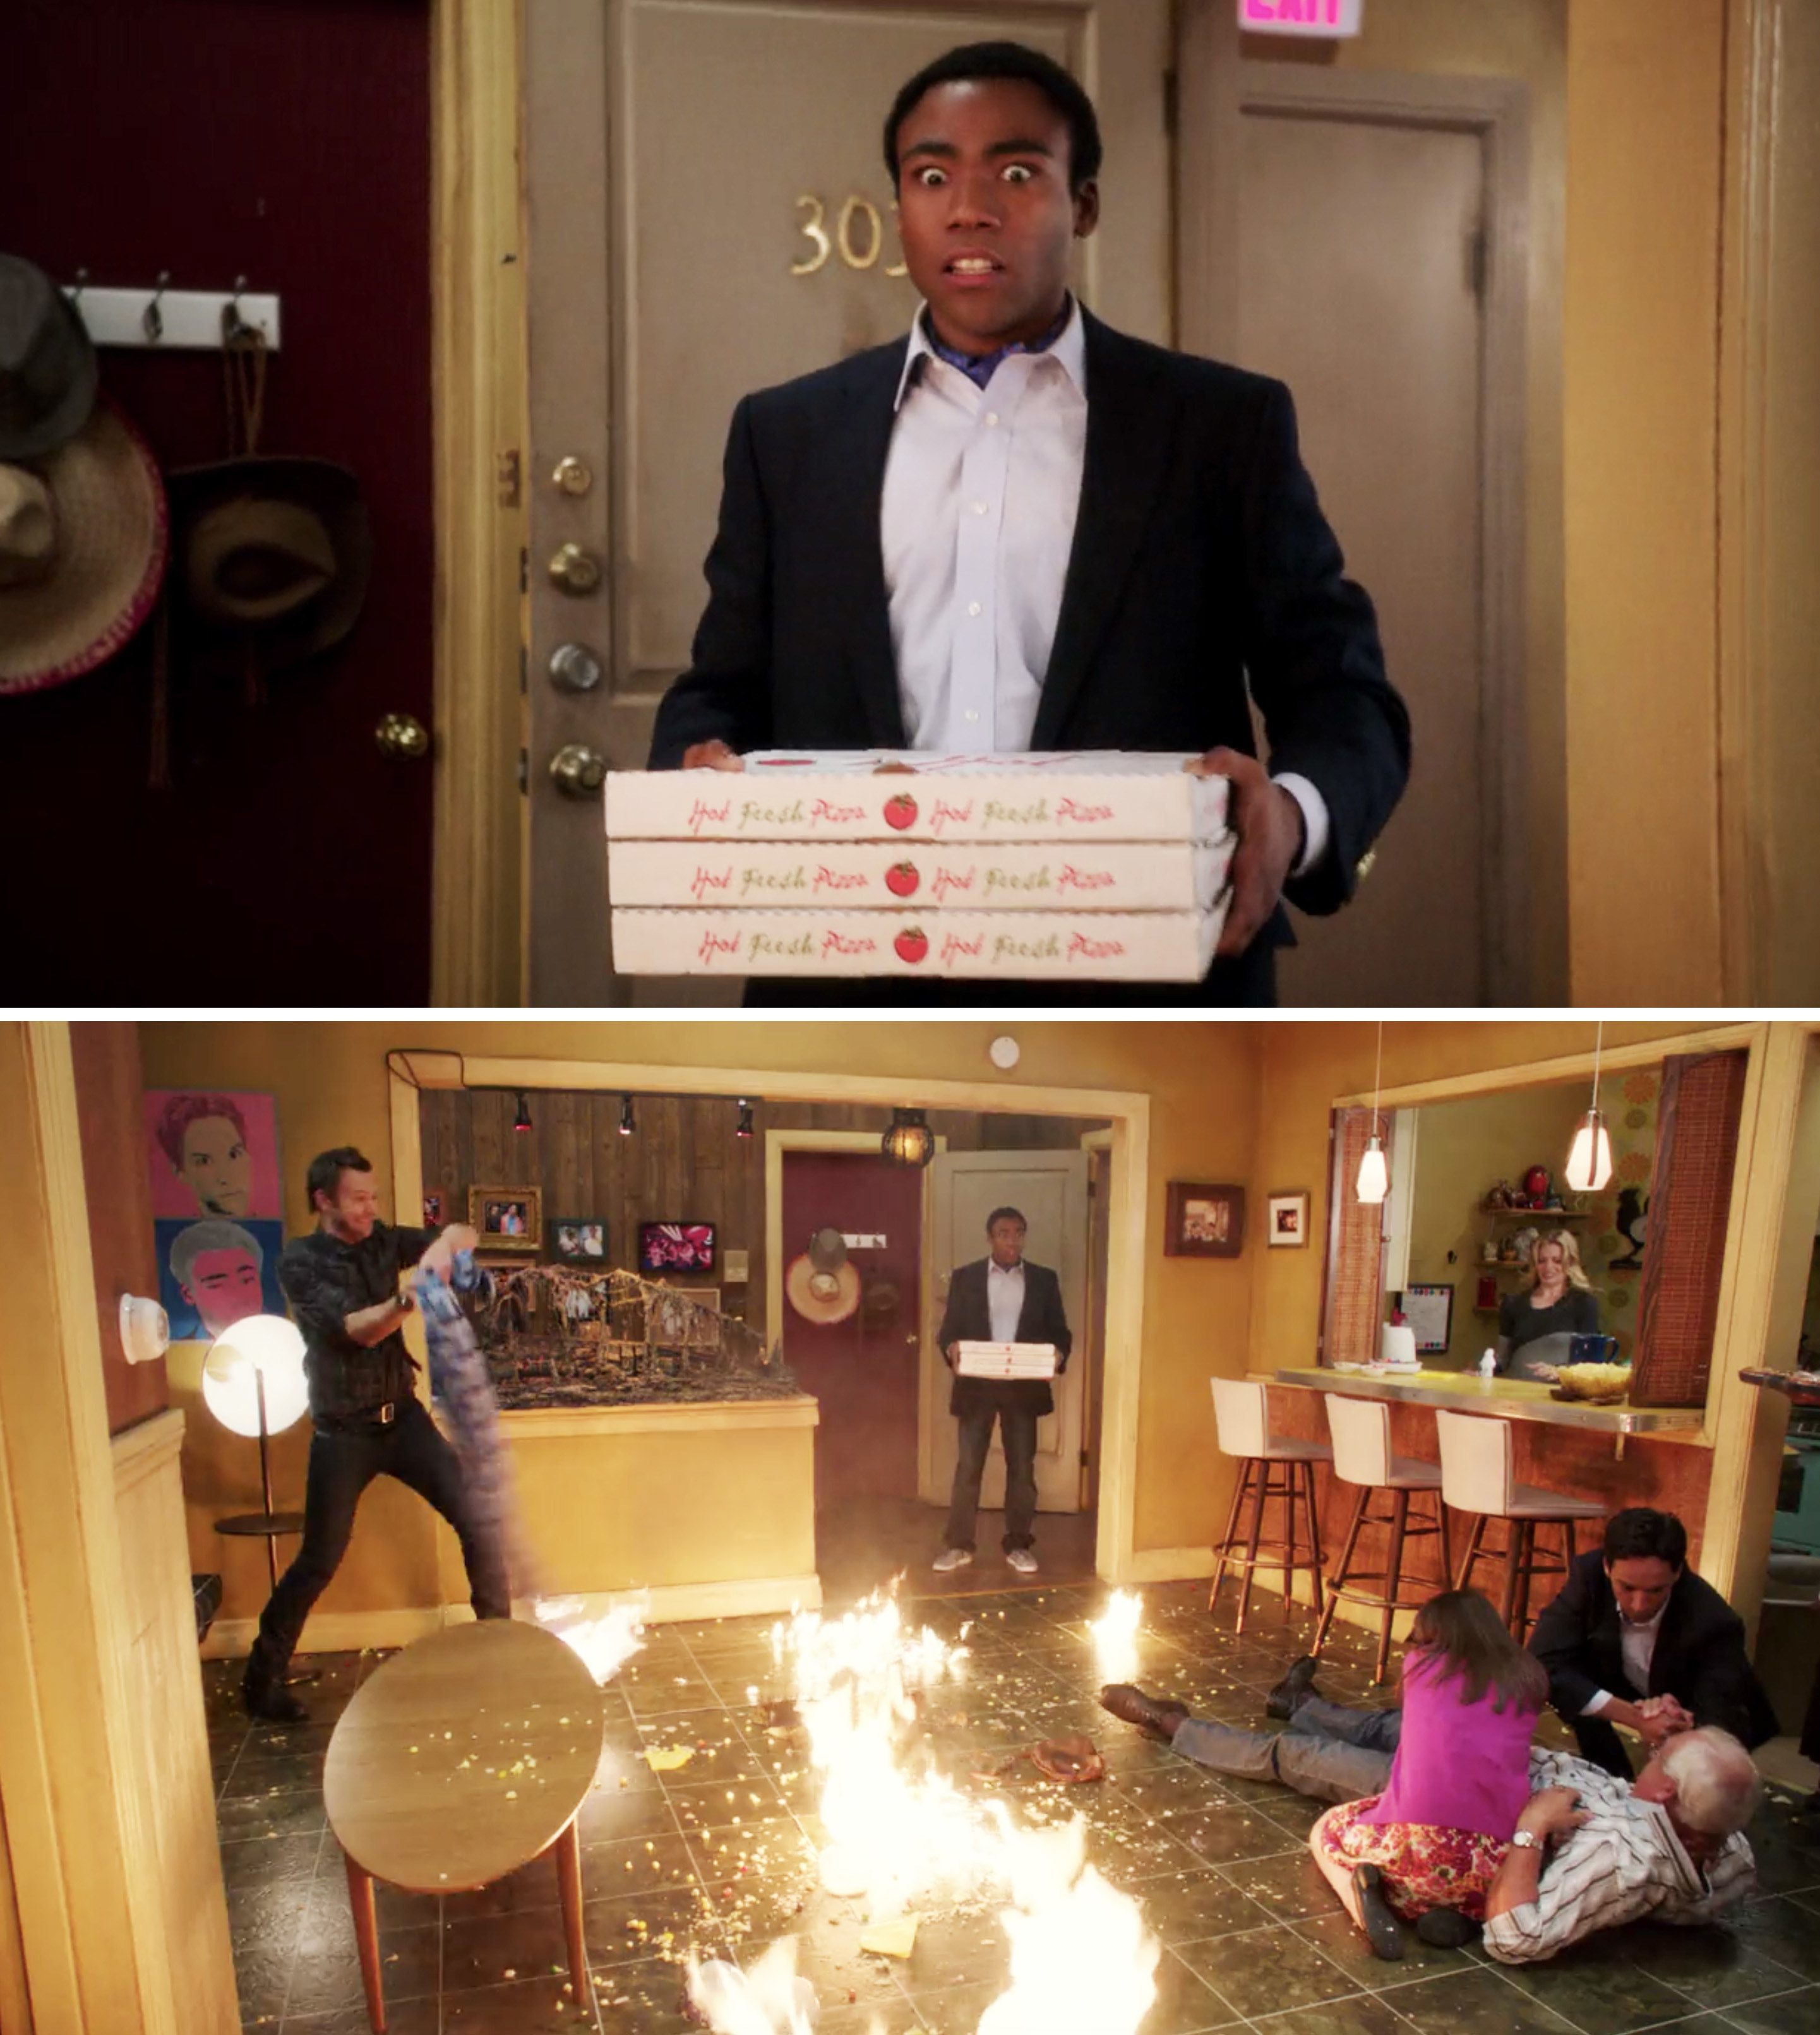 Troy walking in with pizza and seeing everyone screaming and the apartment on fire